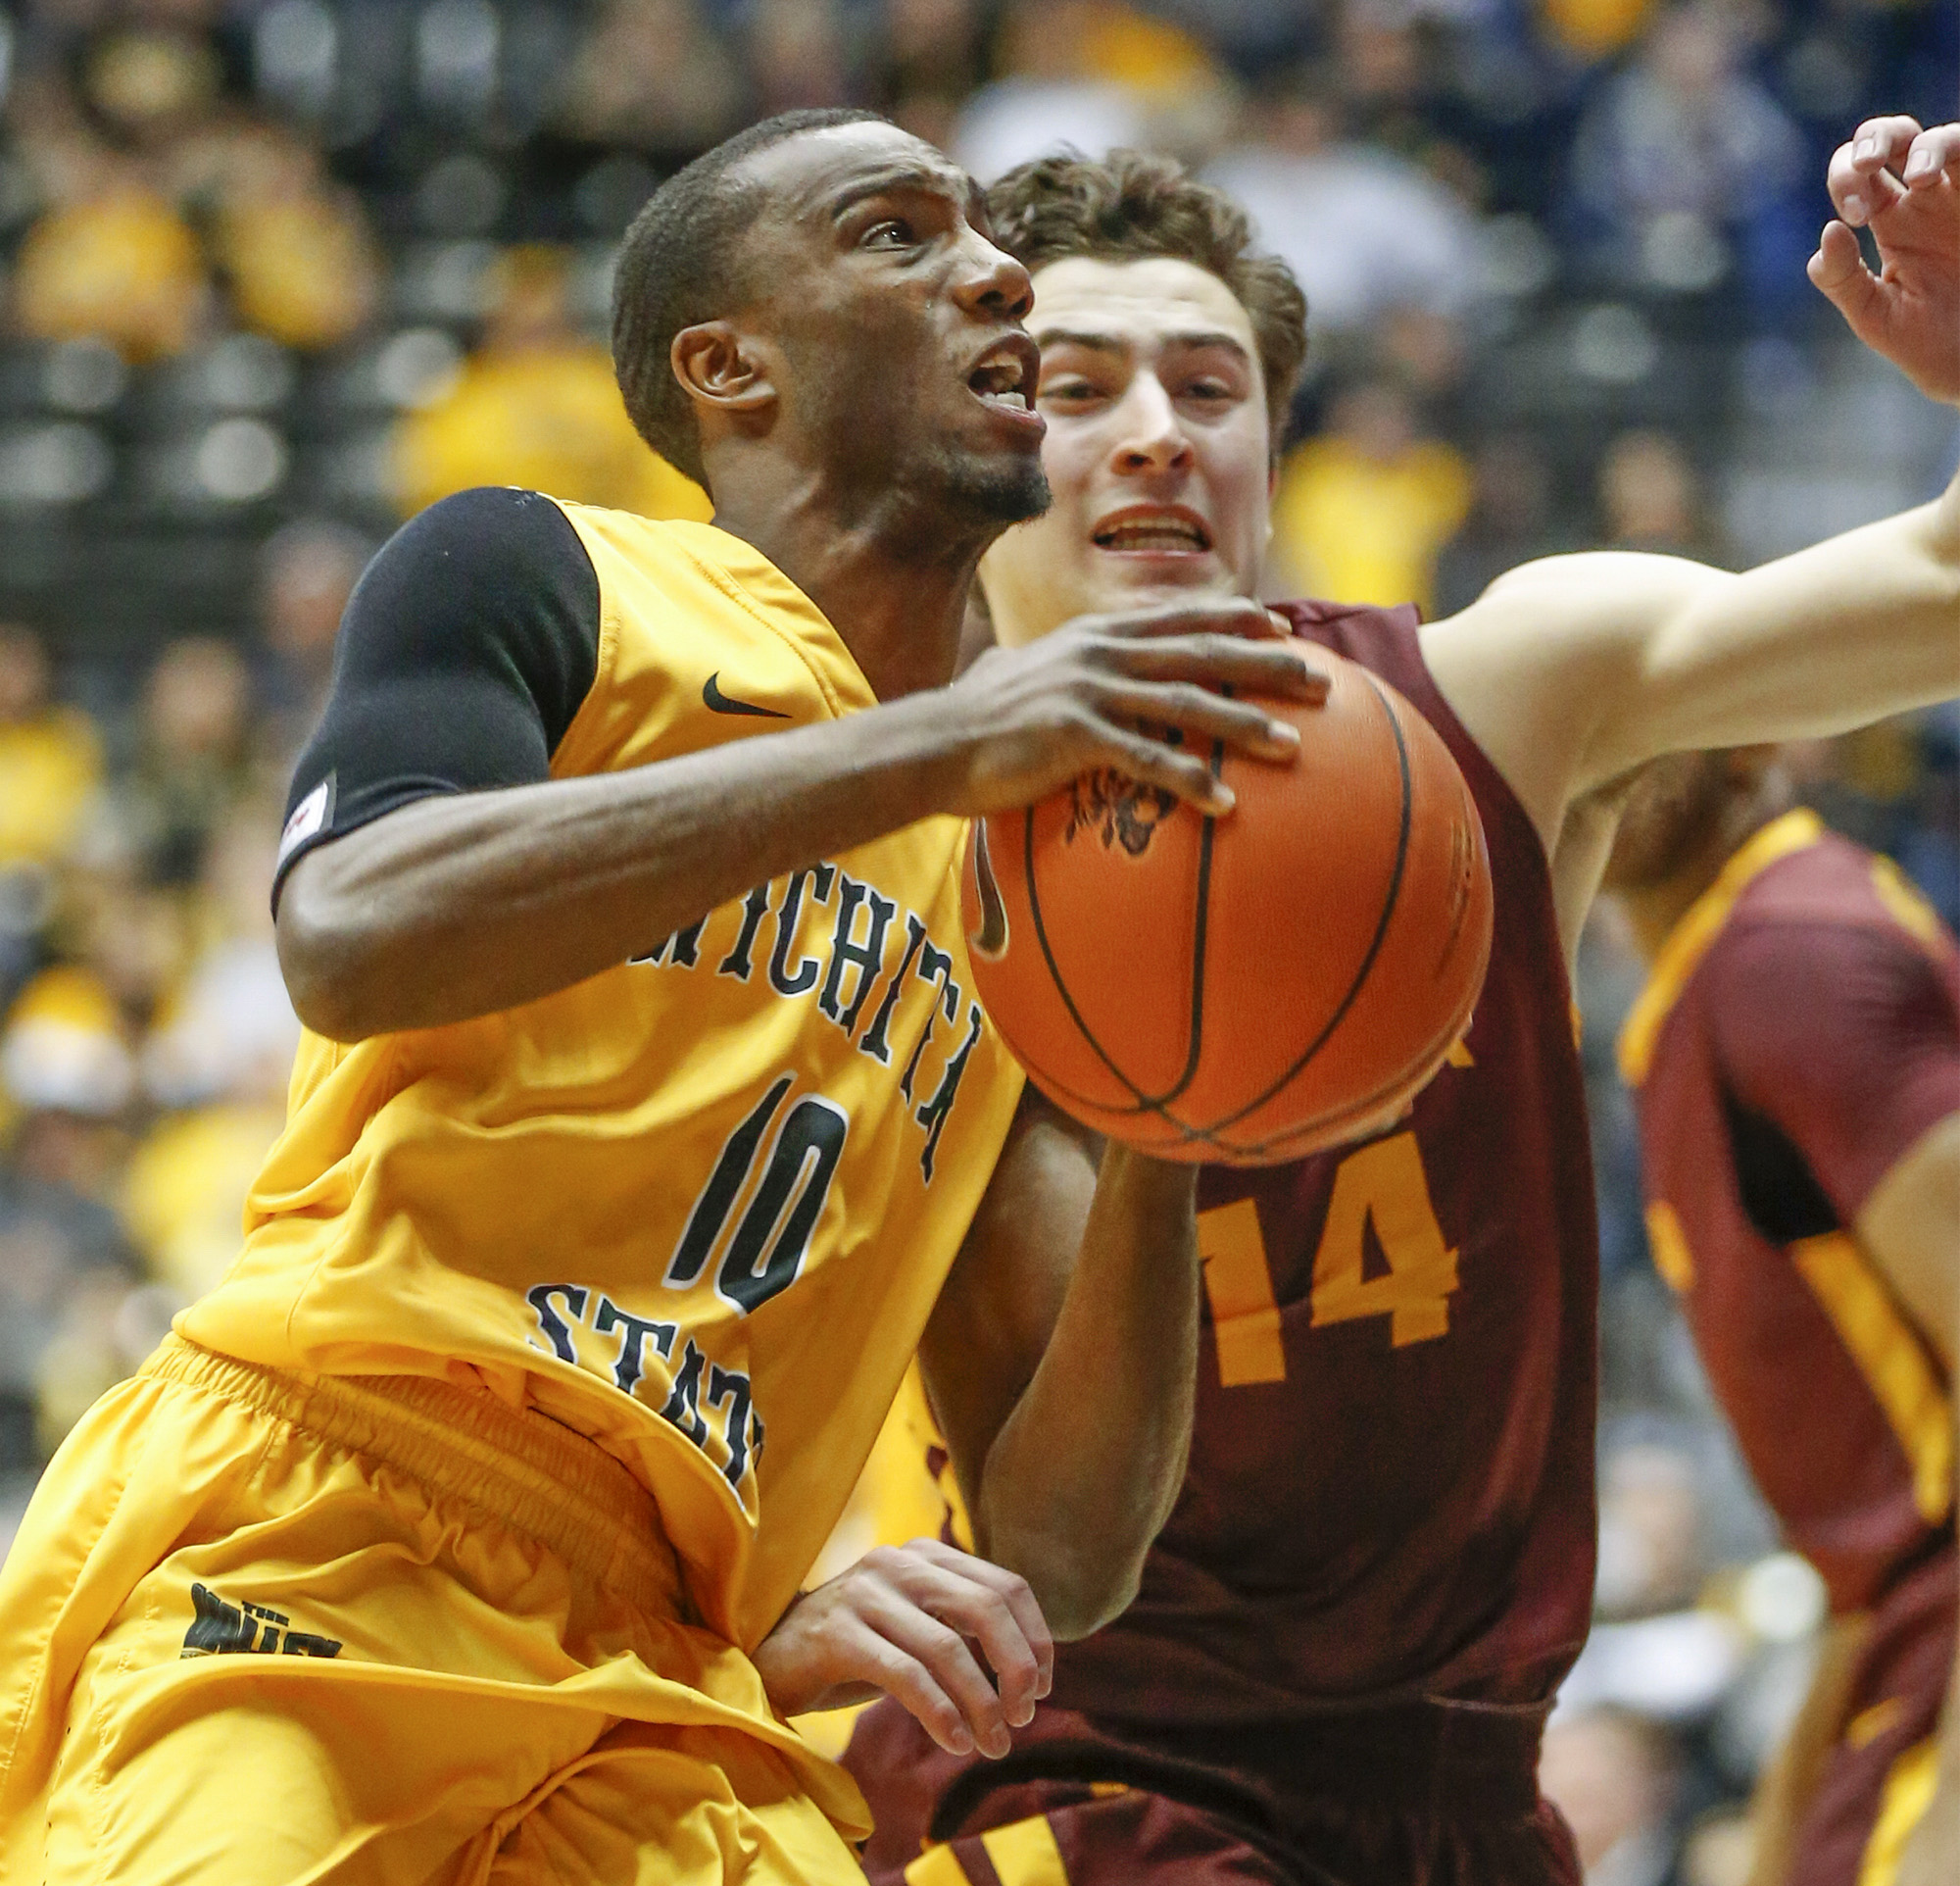 Wichita State's Ty Taylor II (10) drives to the basket against Loyola of Chicago's Ben Richardson during the second half of an NCAA college basketball game Wednesday, Jan. 27, 2016, in Wichita, Kan. (Fernando Salazar/The Wichita Eagle via AP)